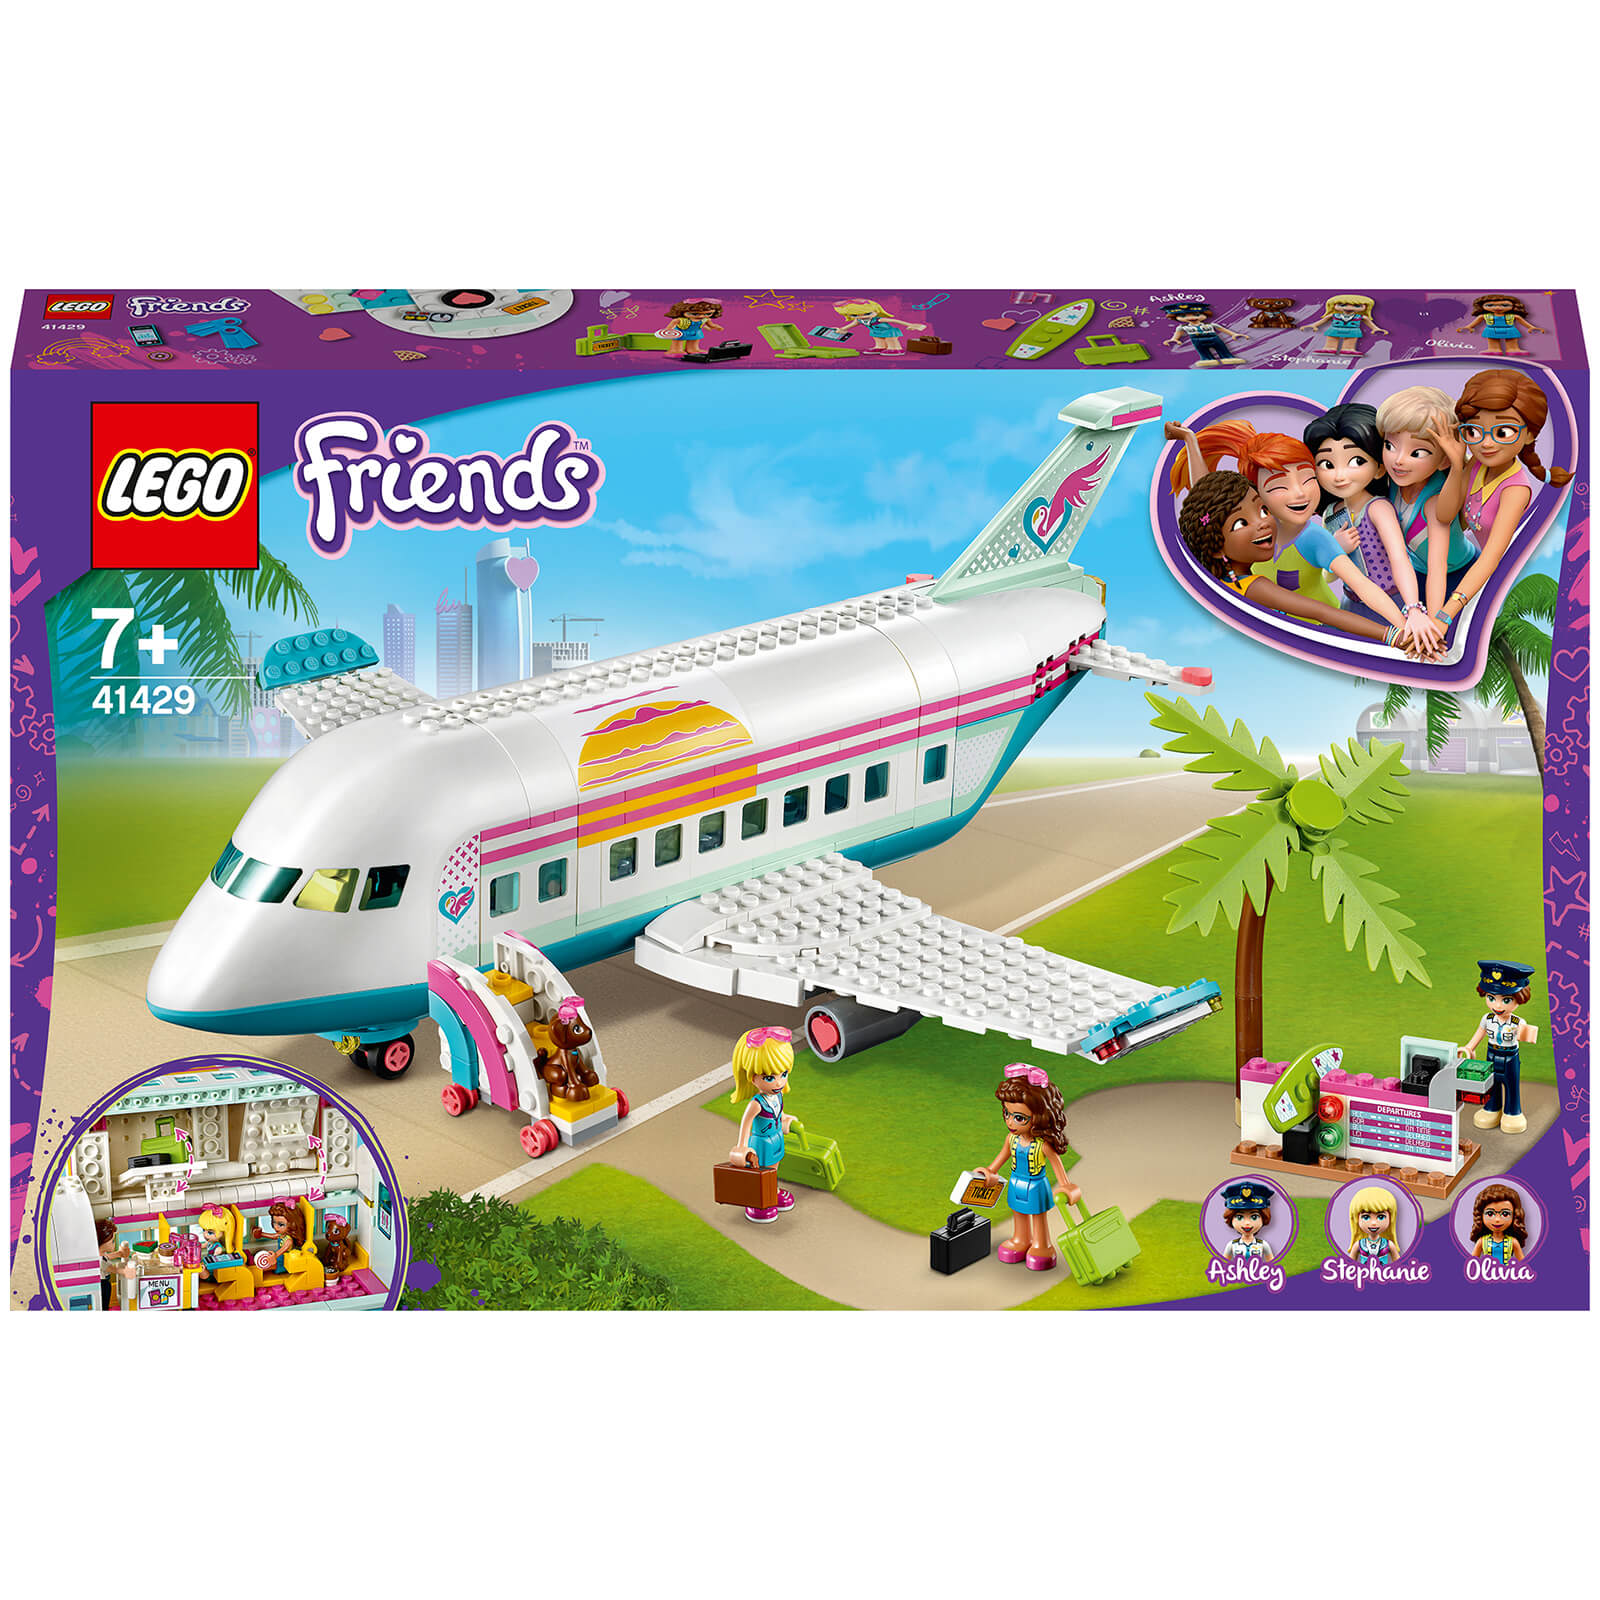 Image of 41429 LEGO® FRIENDS Heartlake City plane